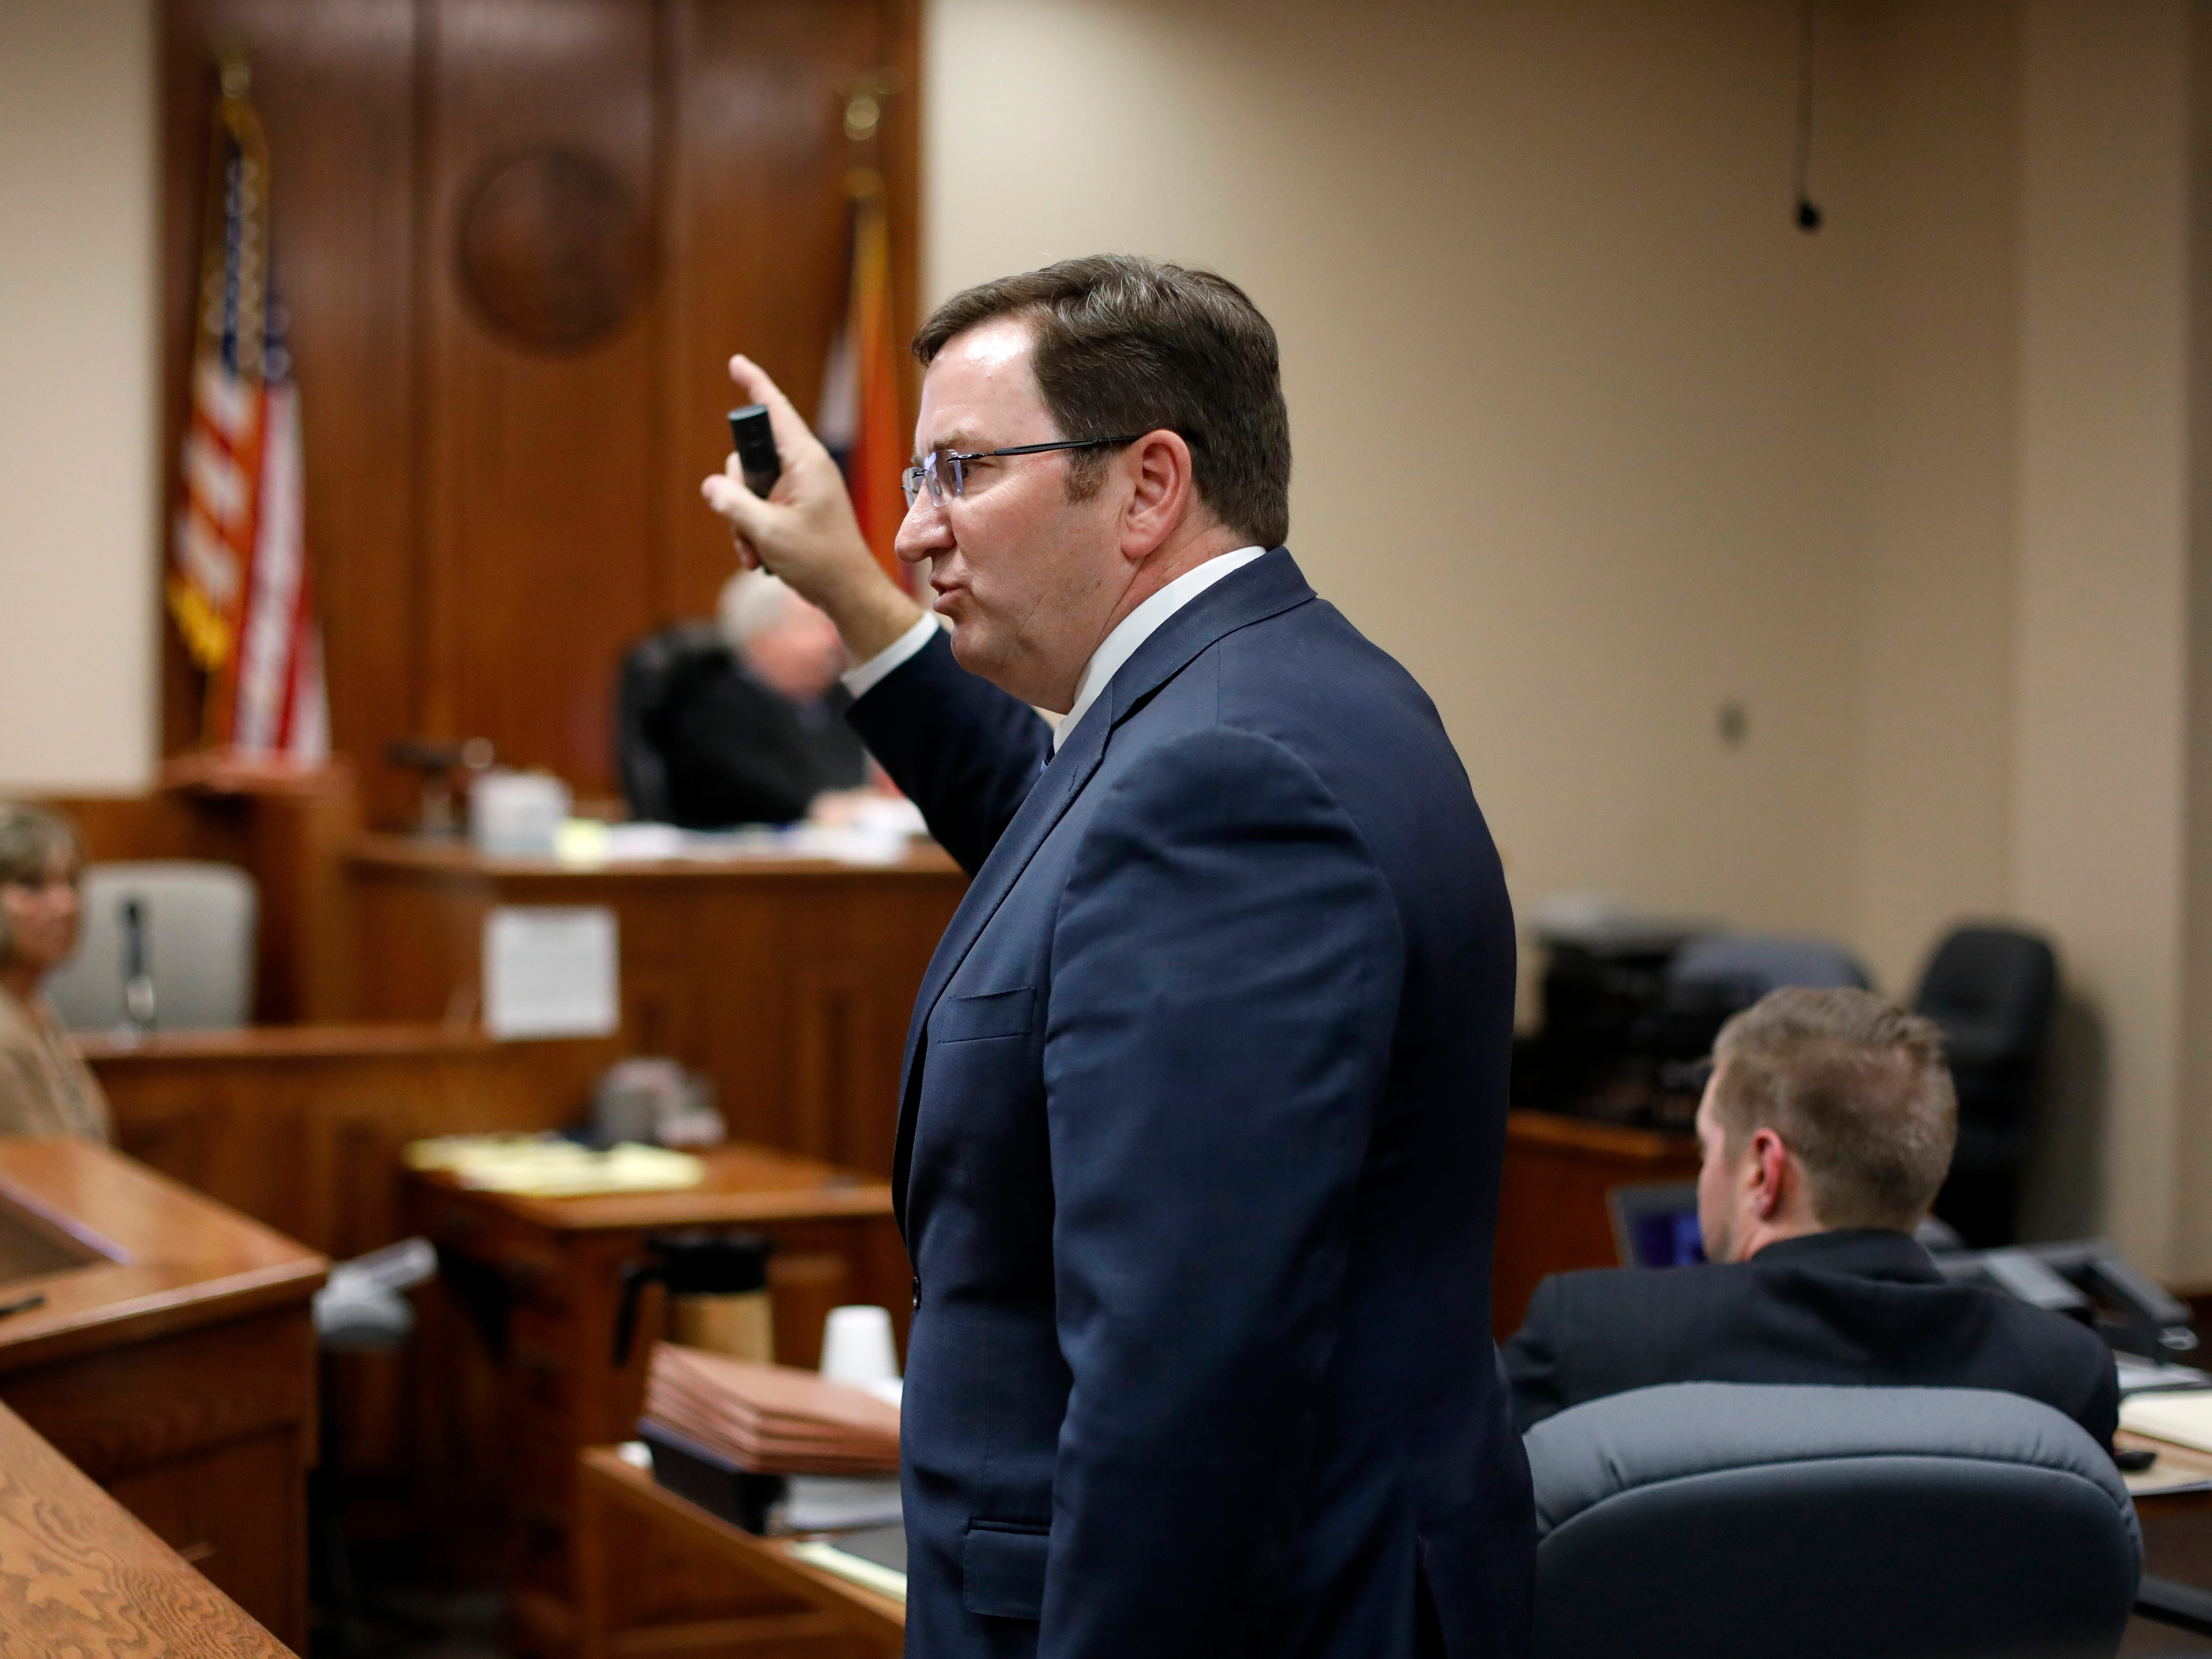 The prosecution and defense wrapped up the last day of the Nicholas Godejohn trial with their closing arguments on Friday, Nov. 16, 2018.